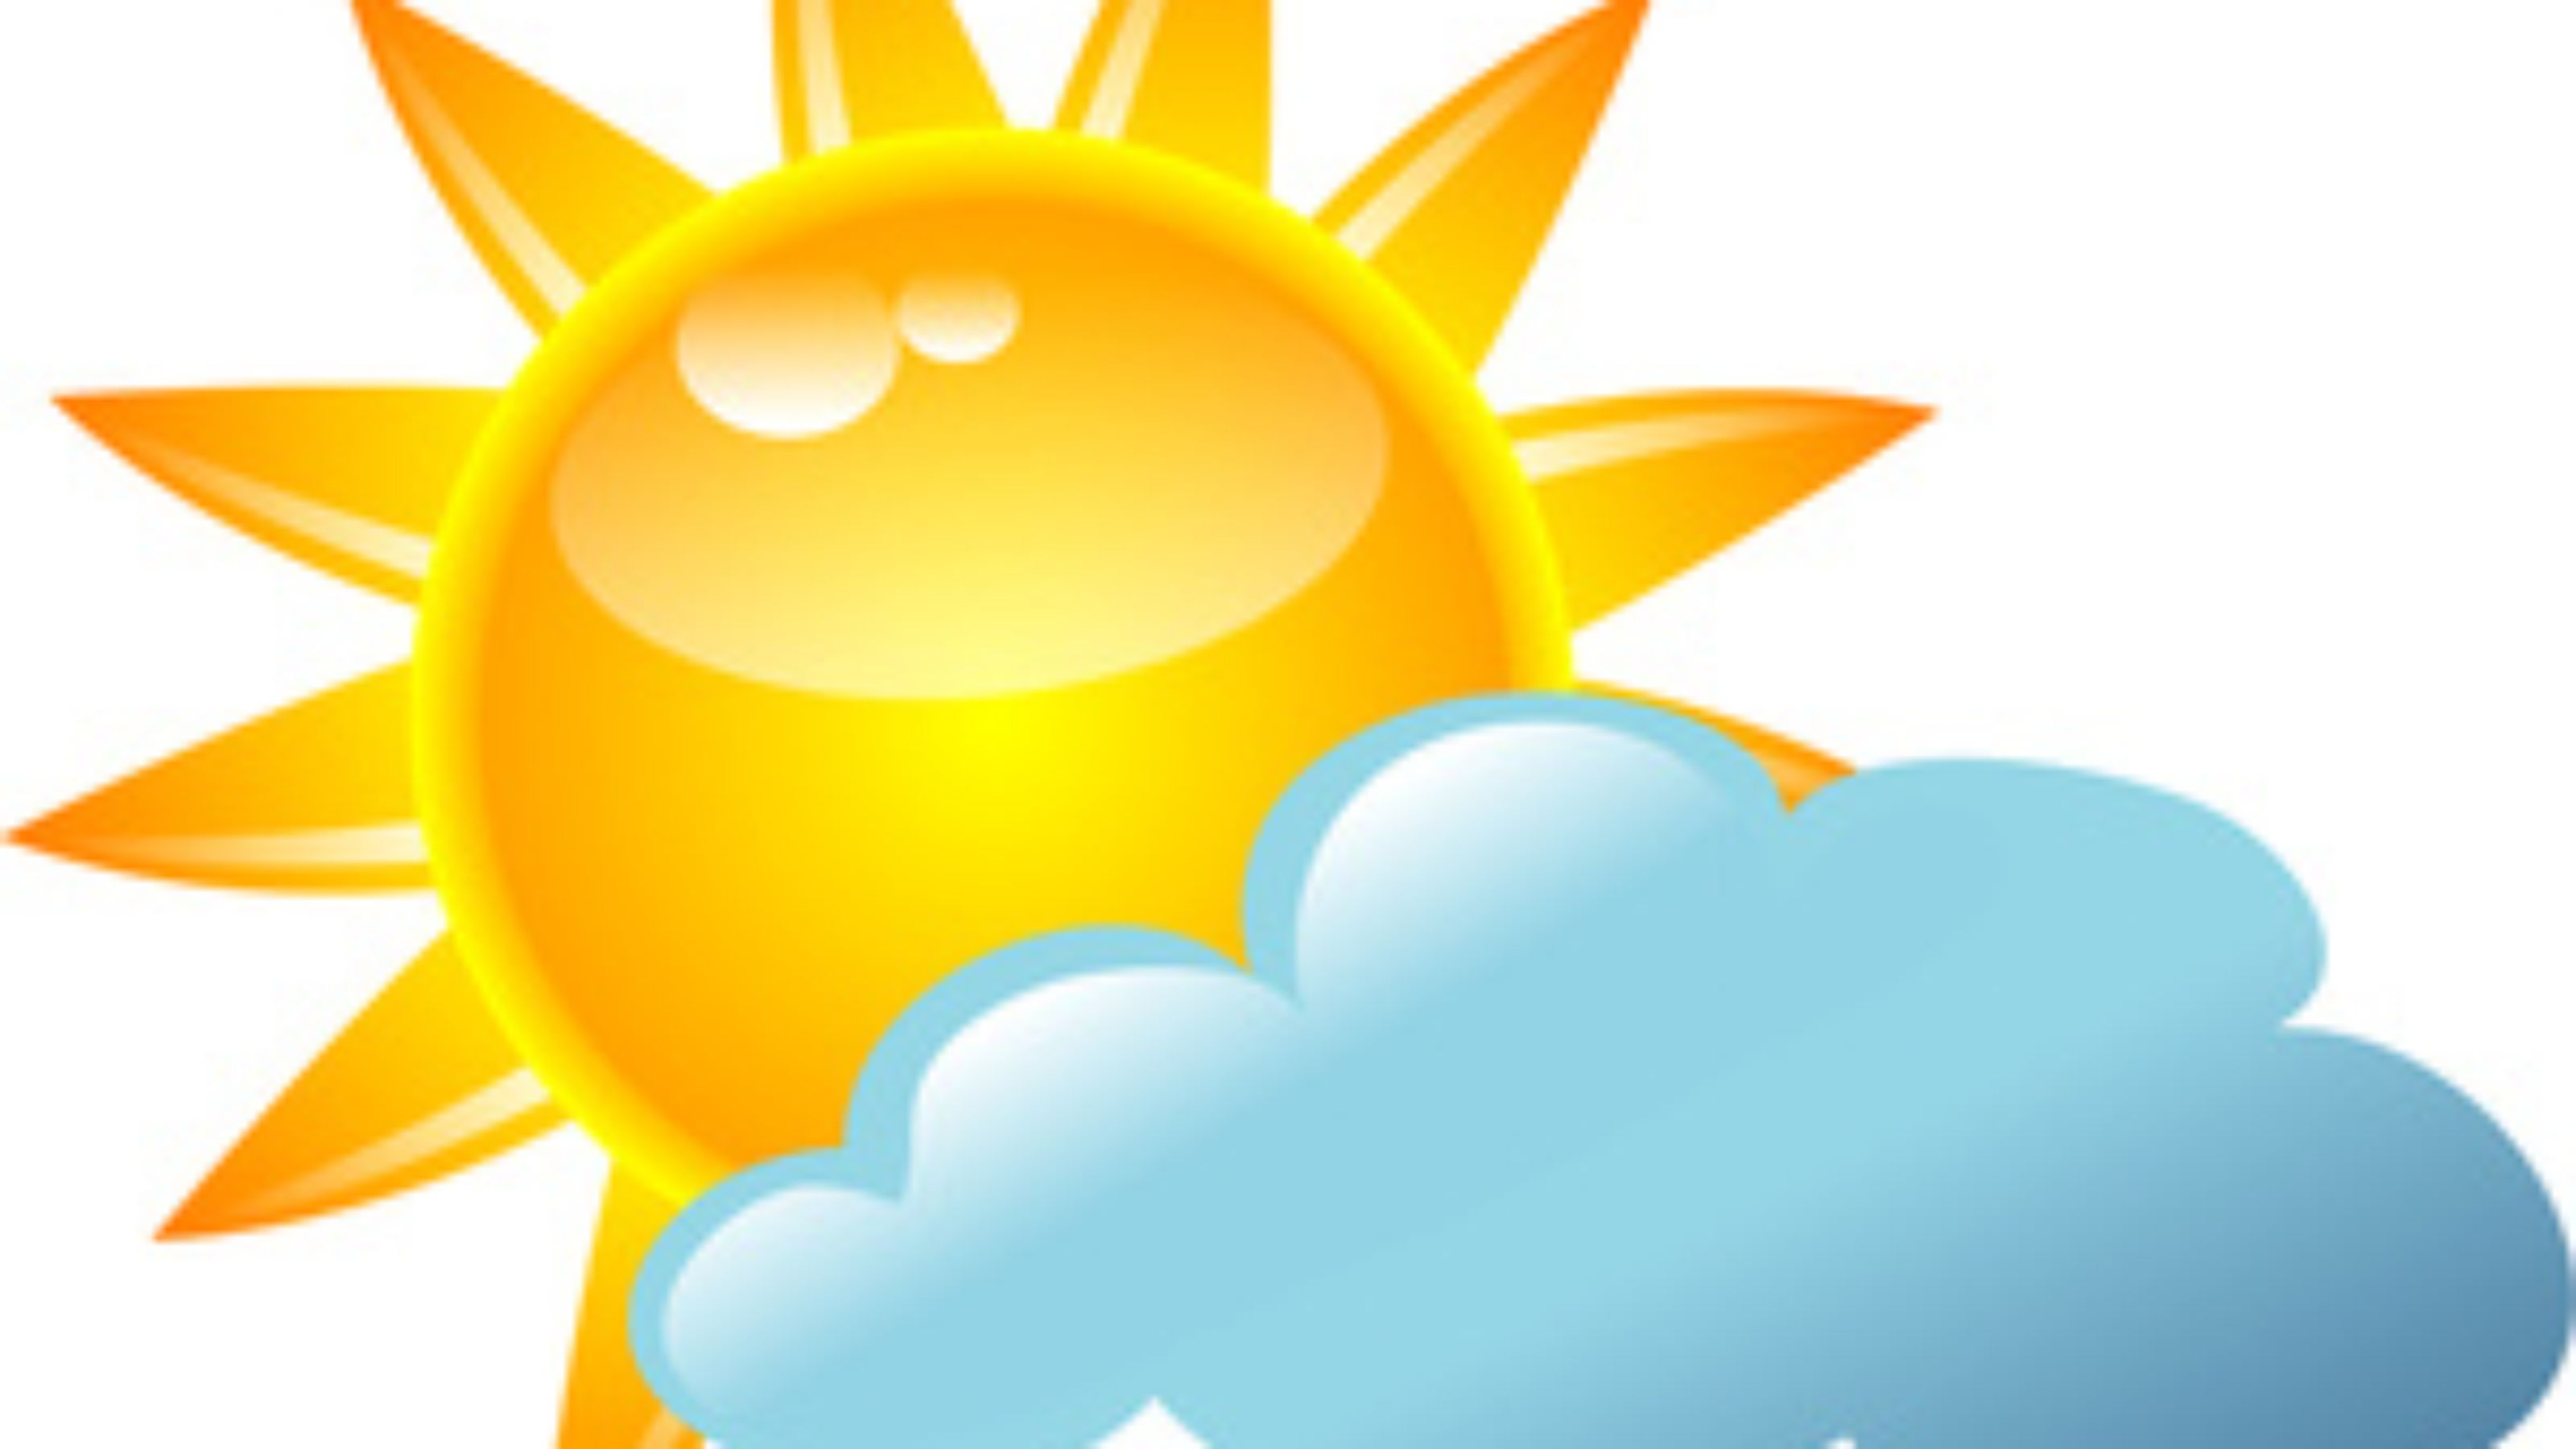 17 Overcast Weather Icon Images - Cartoon of Cloudy ...